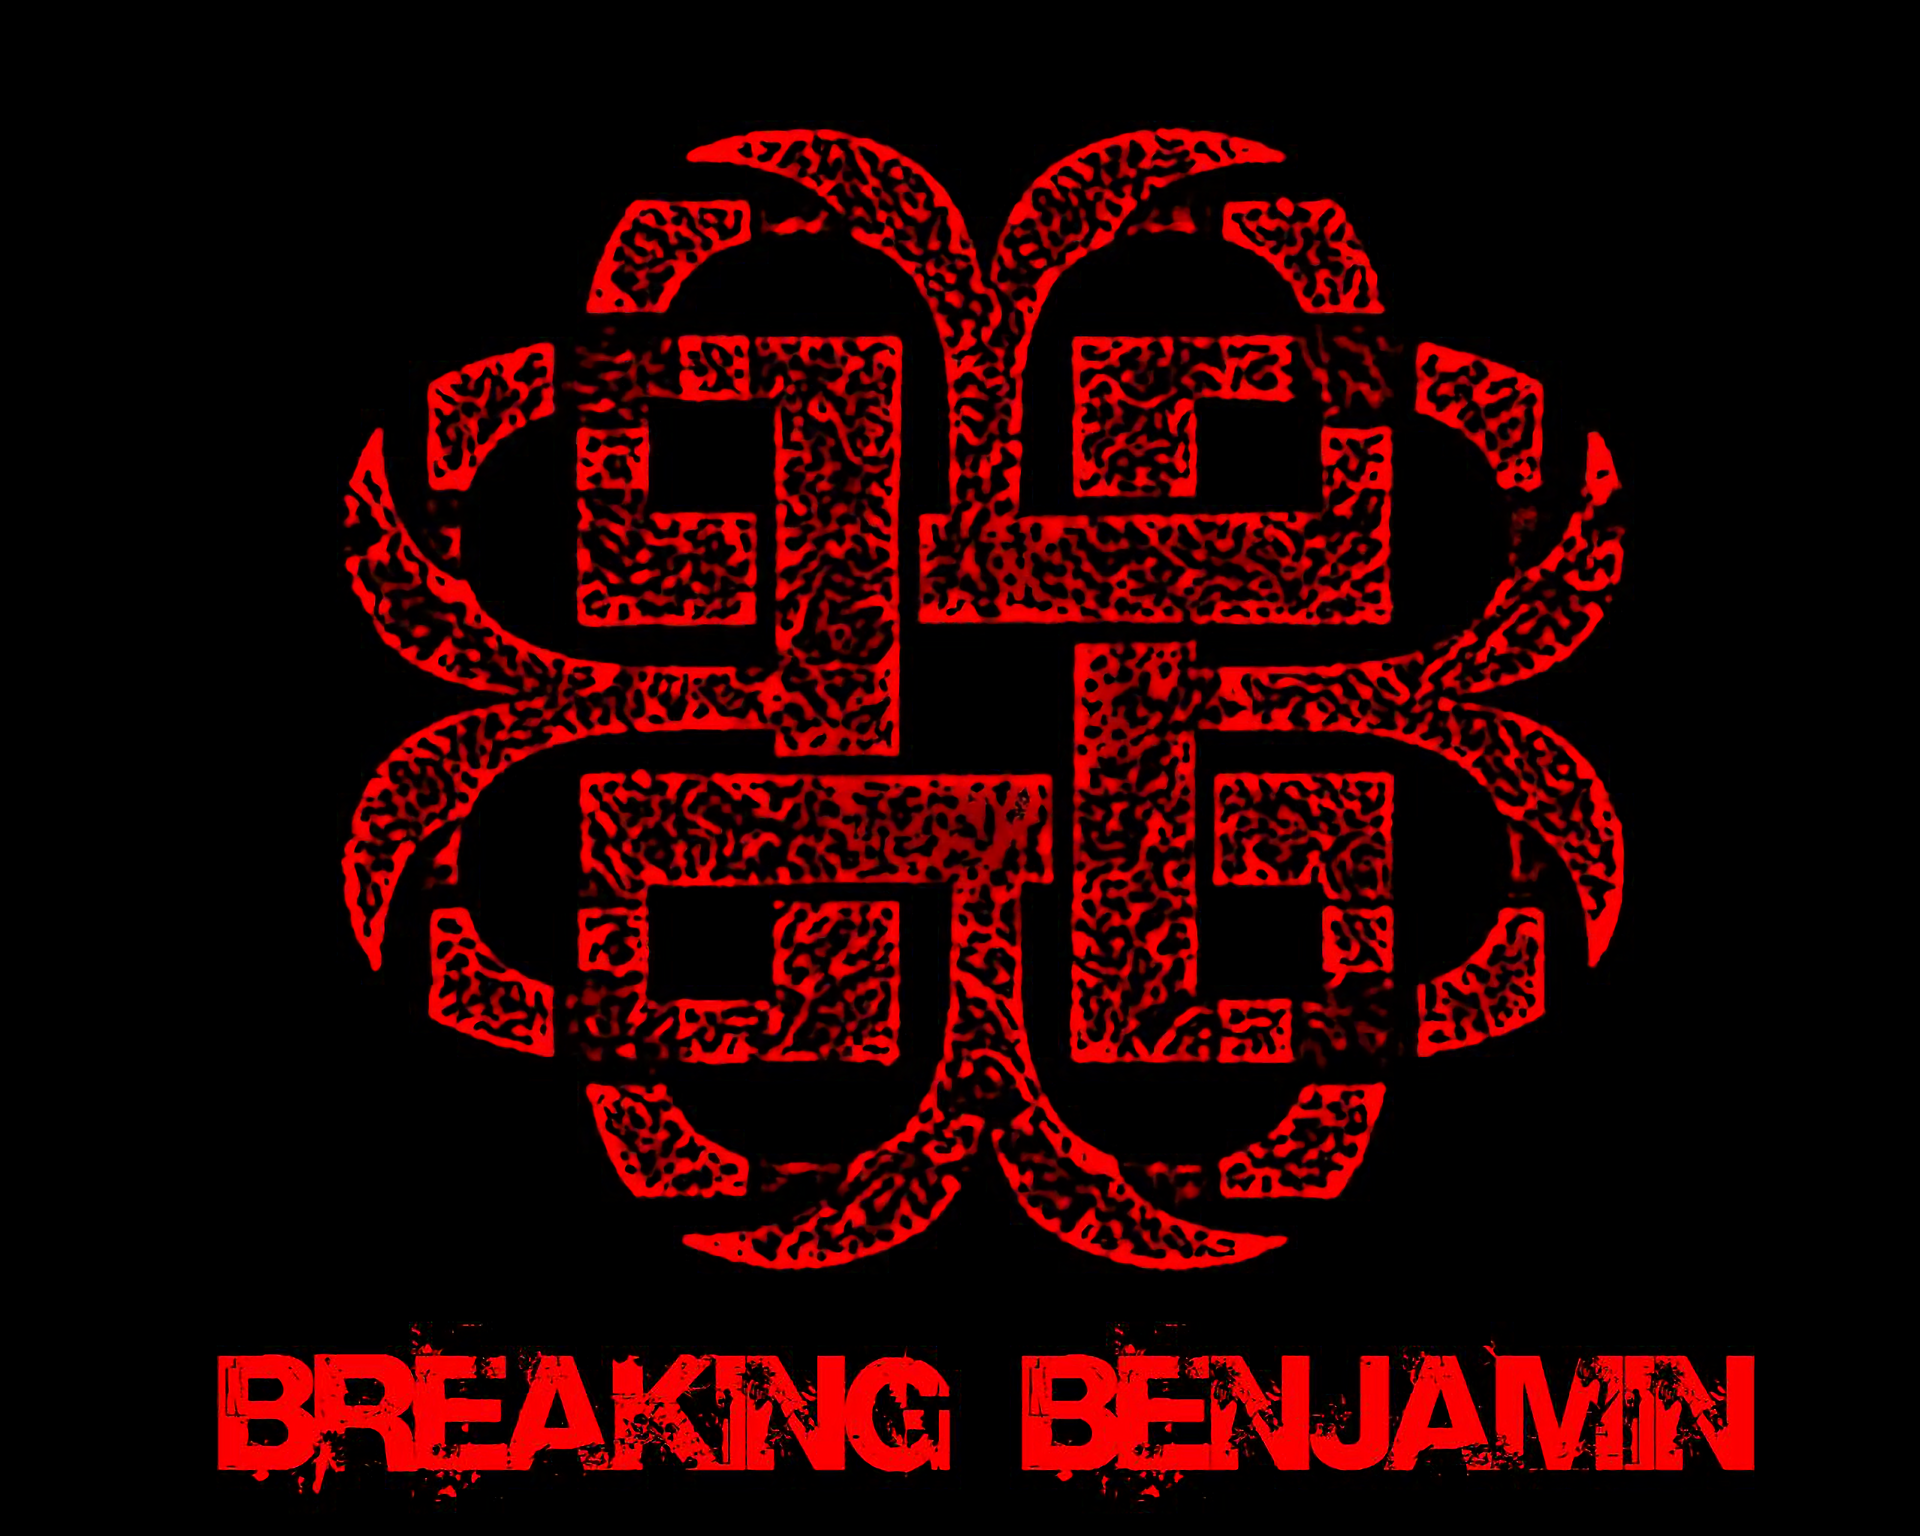 Breaking Benjamin HD Wallpaper Background Image 1920x1536 ID 1920x1536